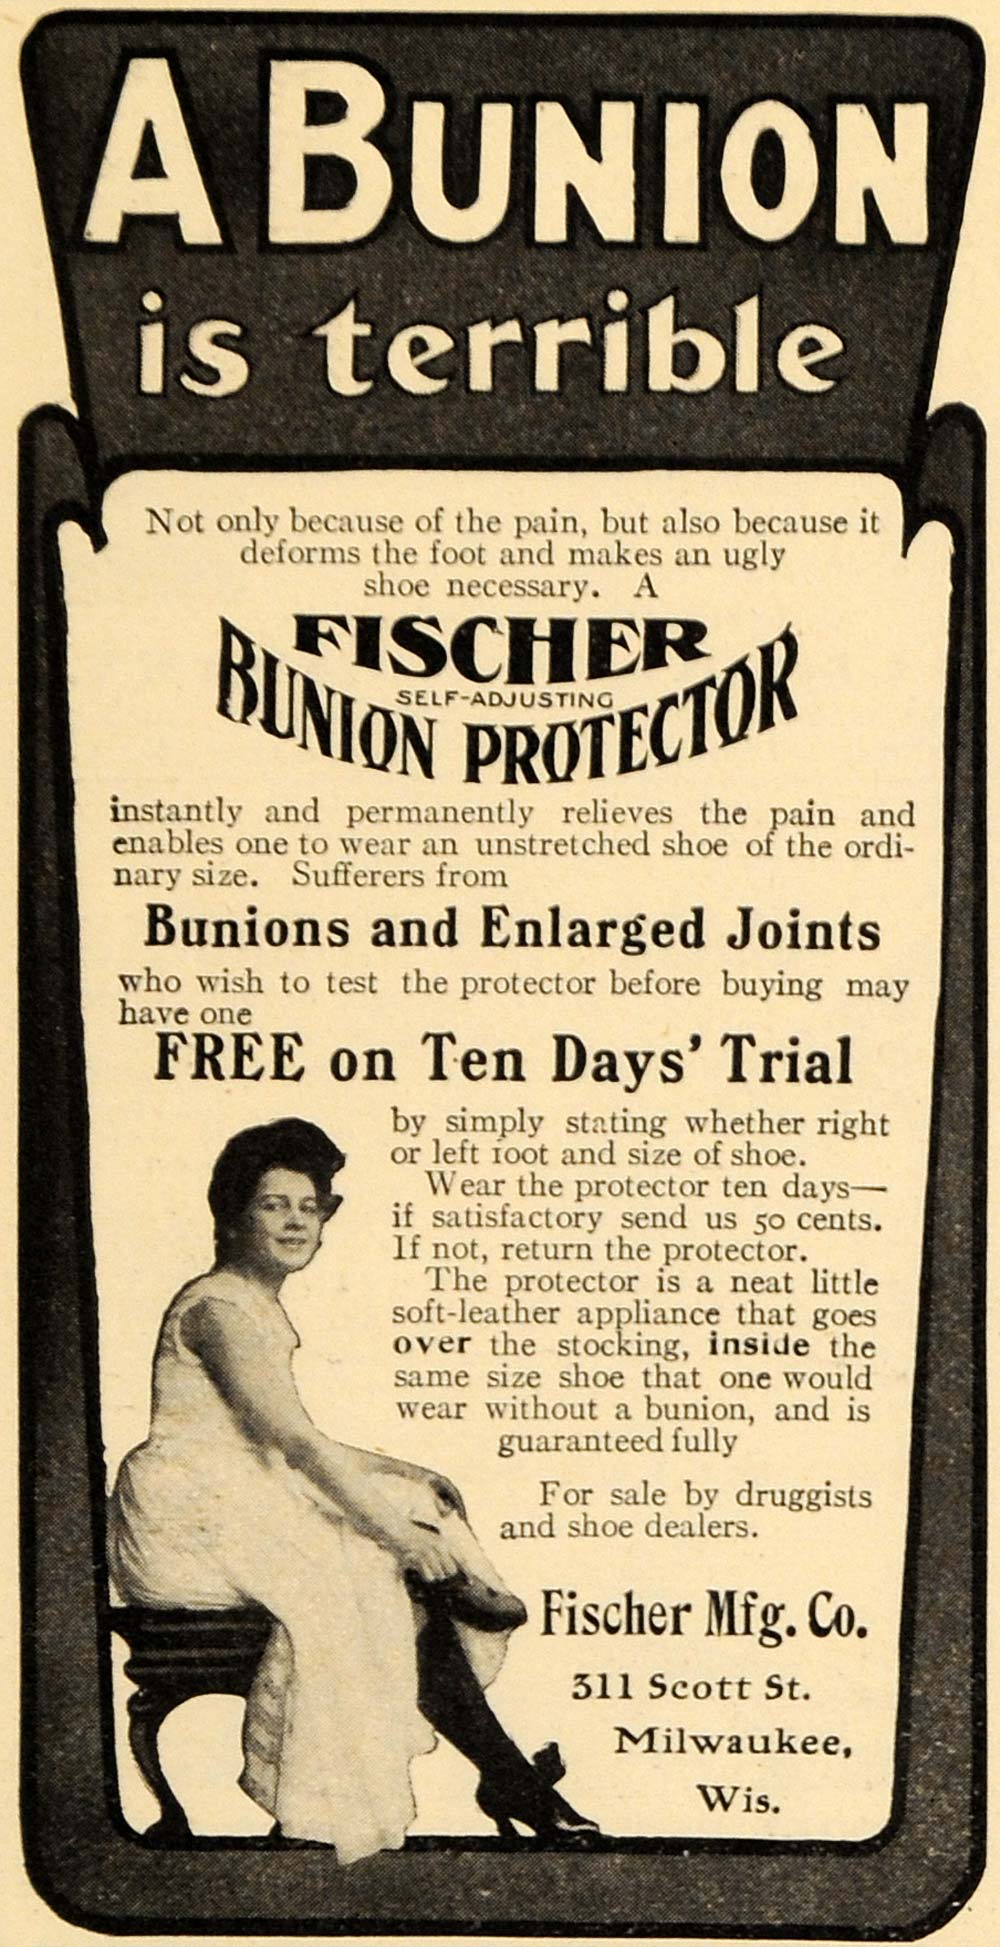 1905 Ad Fischer Bunion & Enlarged Joints Protector WI - ORIGINAL ADVERTISING EM2